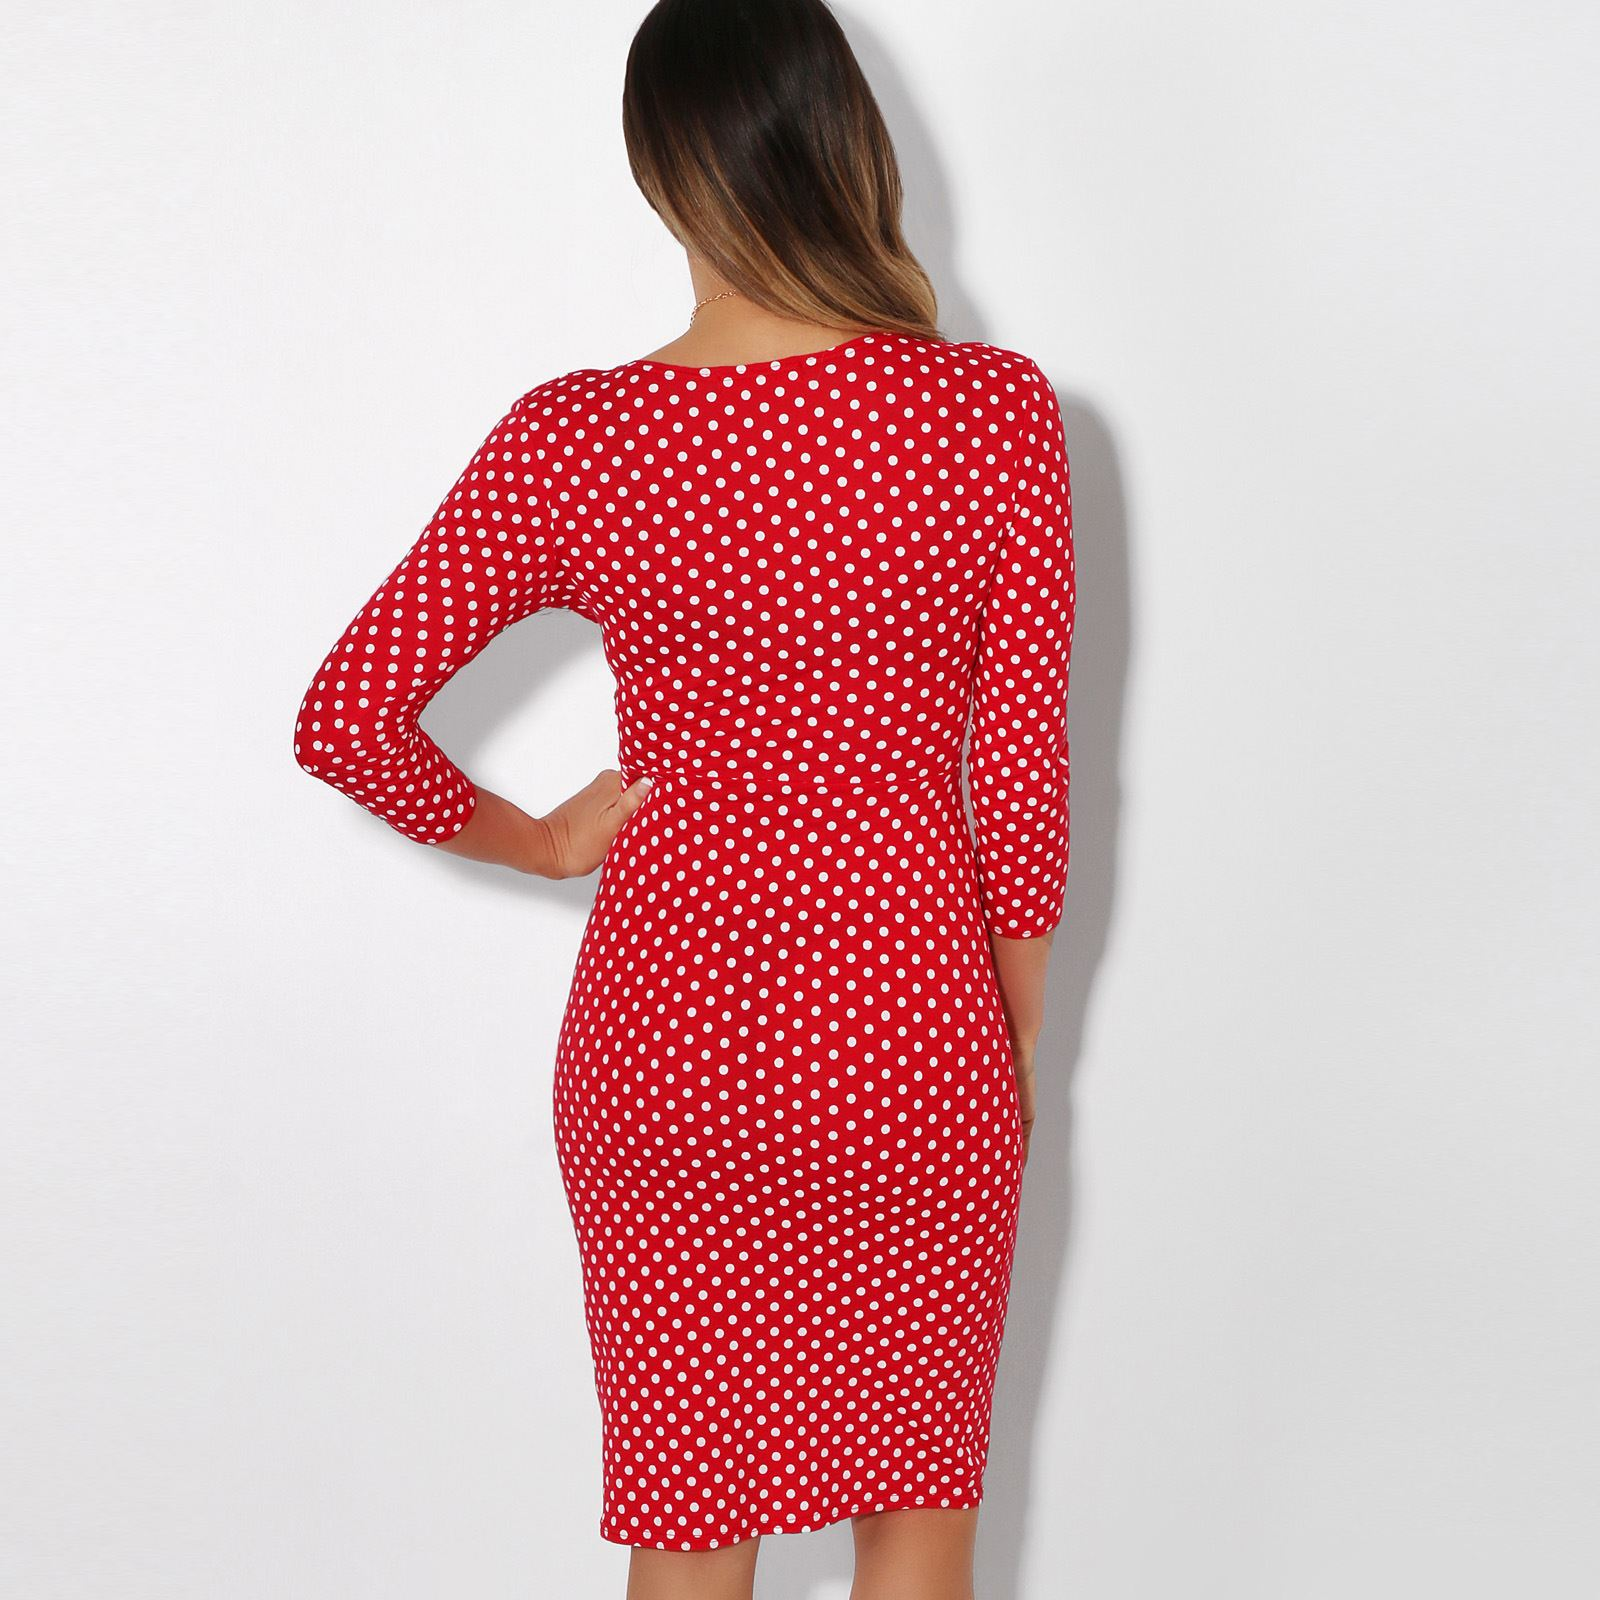 Womens-Polka-Dot-Dress-Pleated-Skirt-Wrap-Front-Mini-V-Neck-Top-Swing thumbnail 34